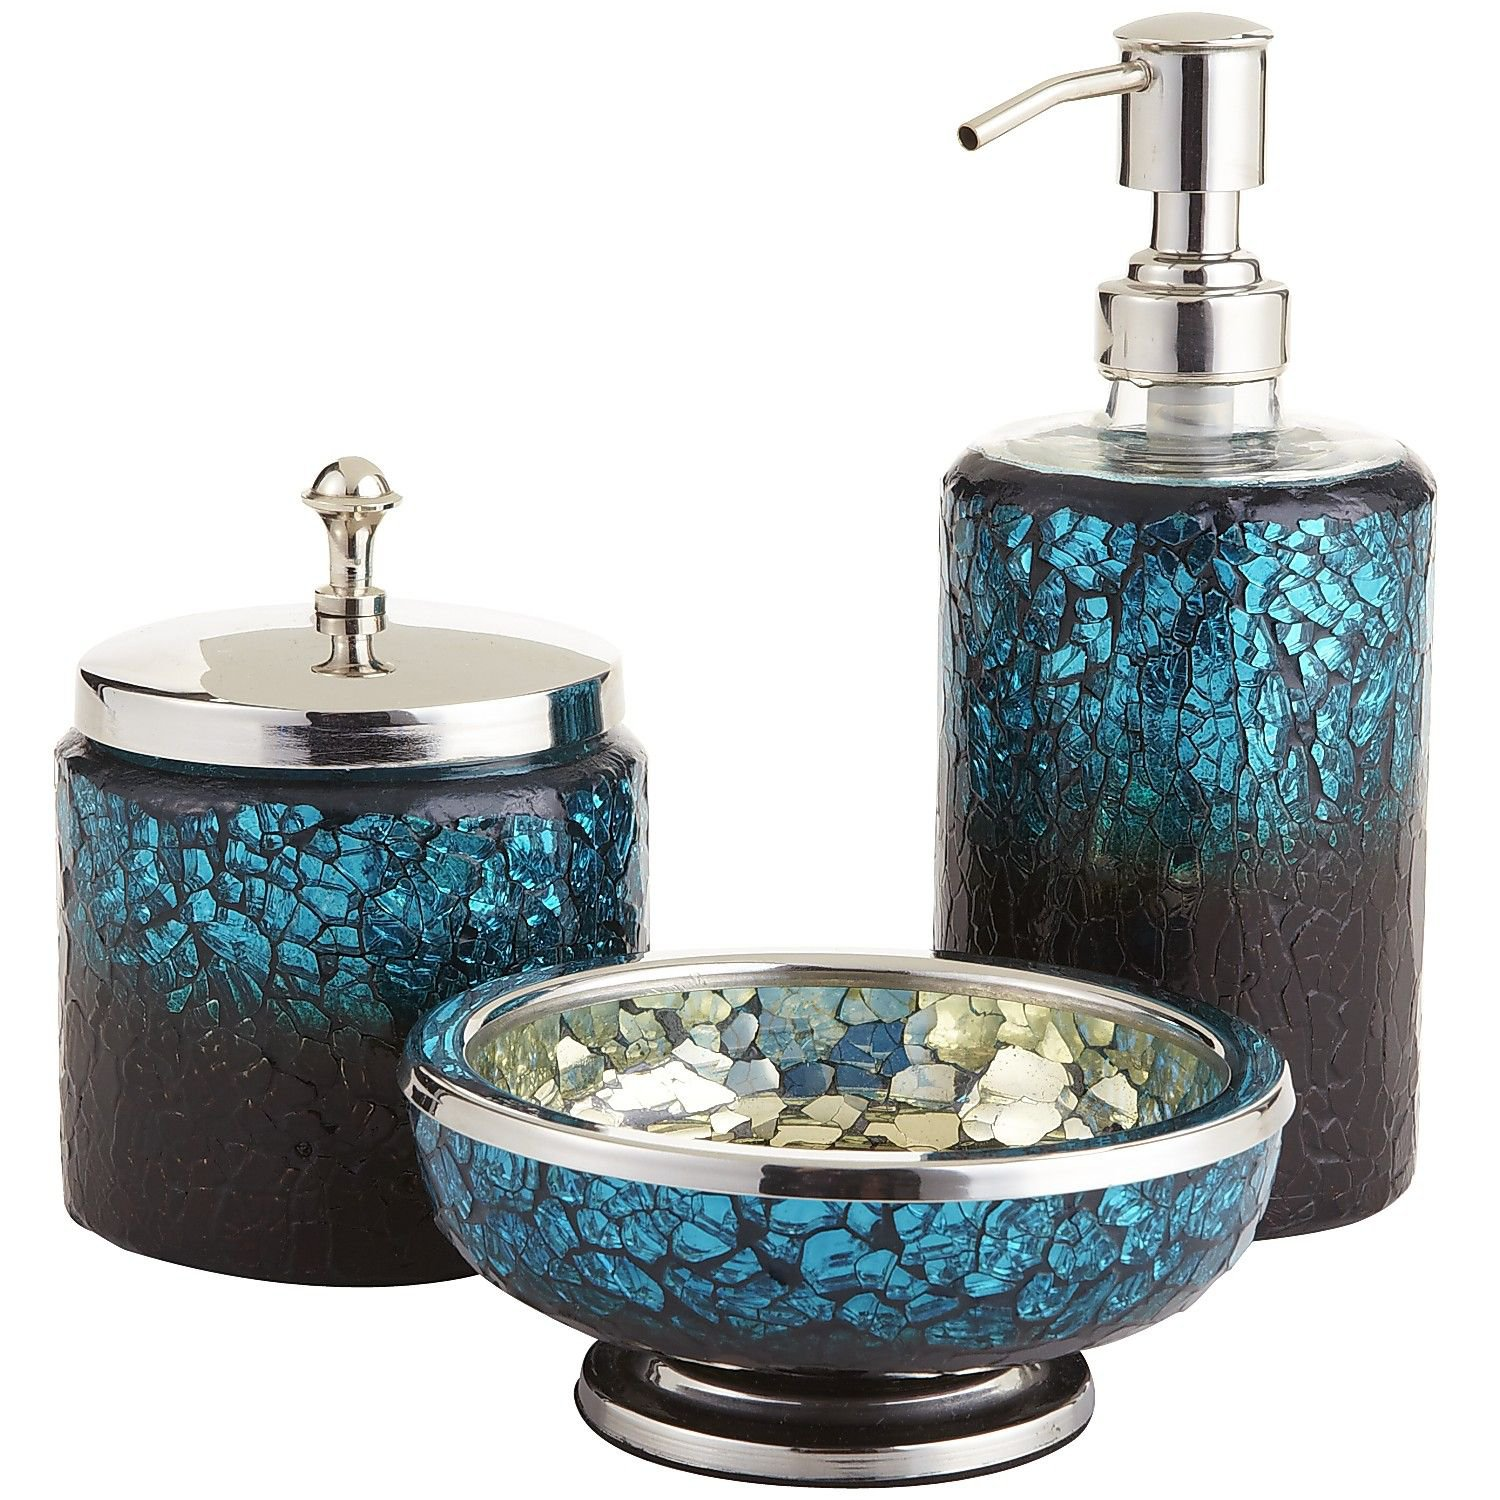 Peacock Mosaic Bath Accessories From Pier 1 Imports For The